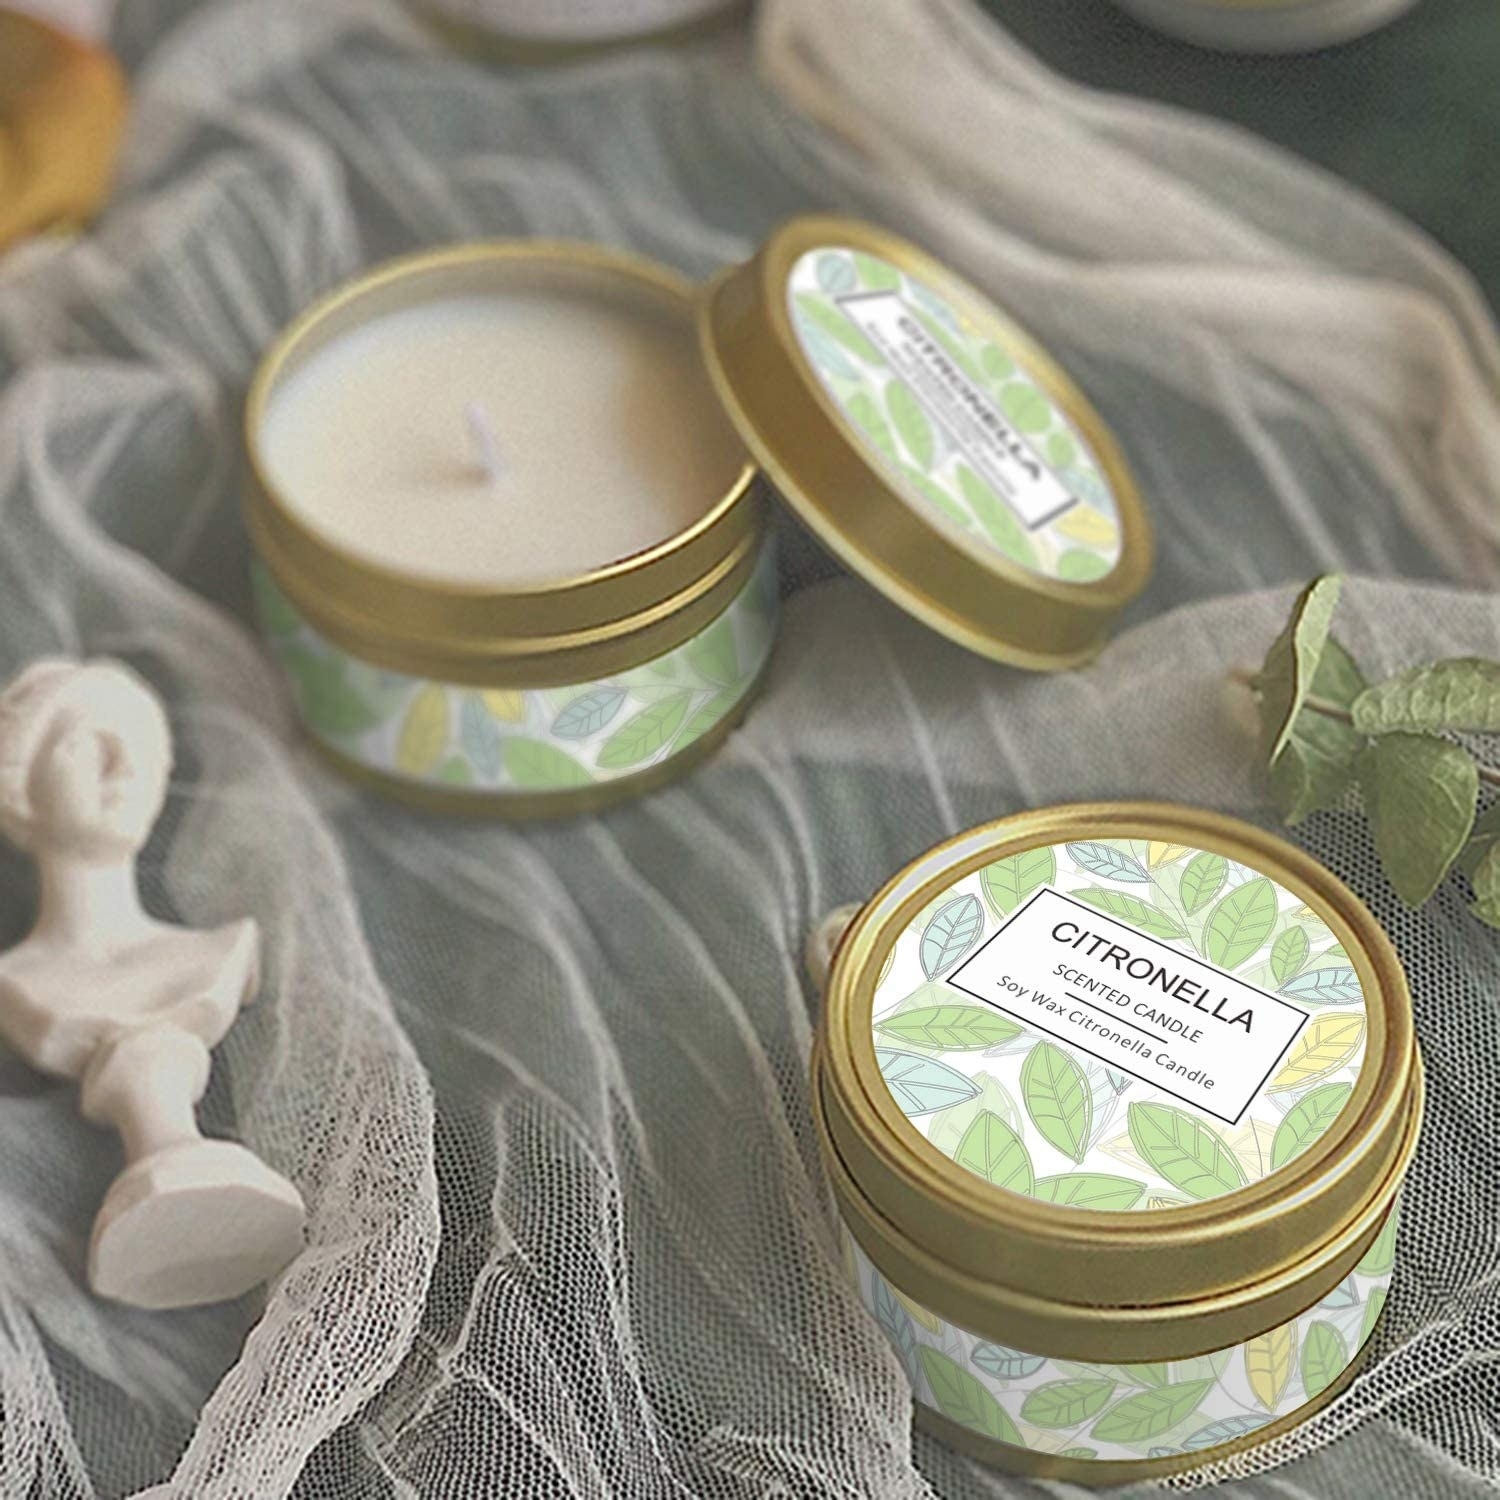 the tins of candles